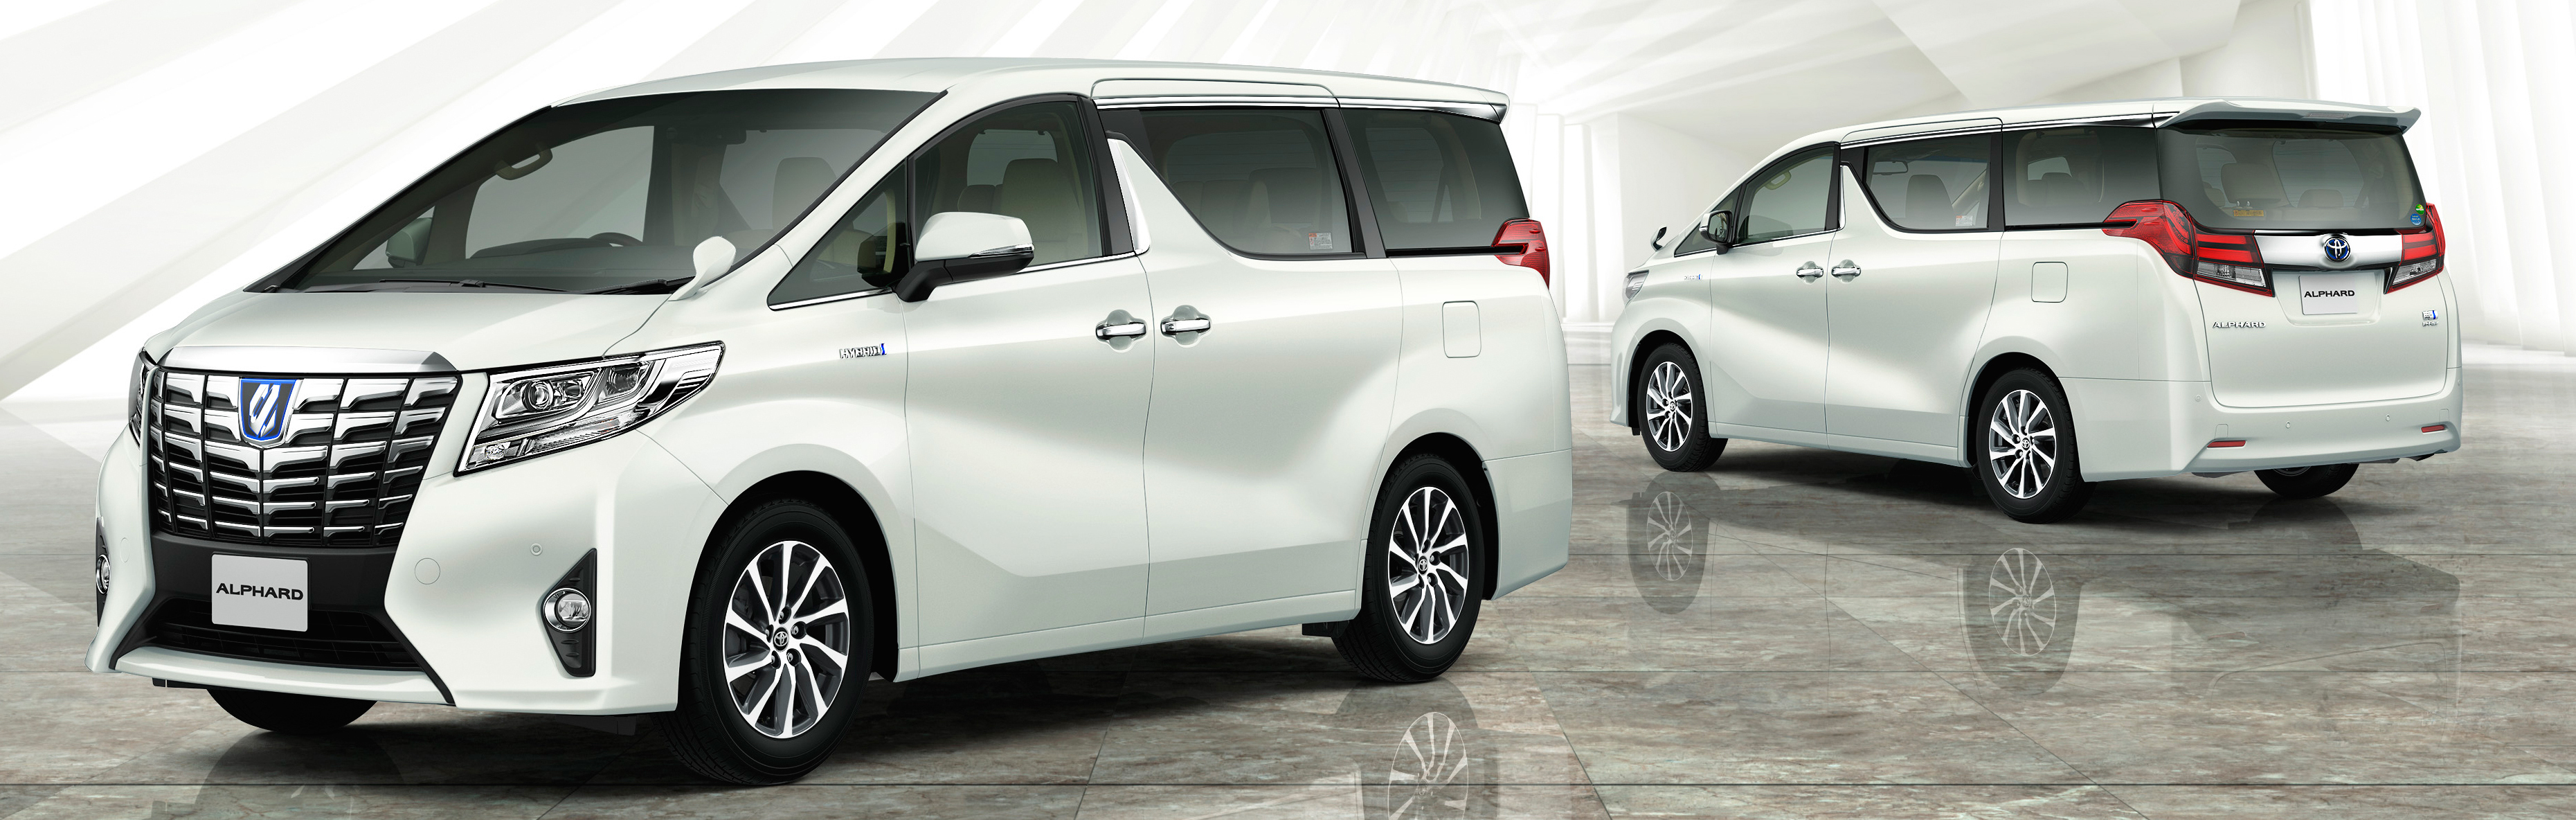 2015 Toyota Alphard And Vellfire Unveiled Full Details